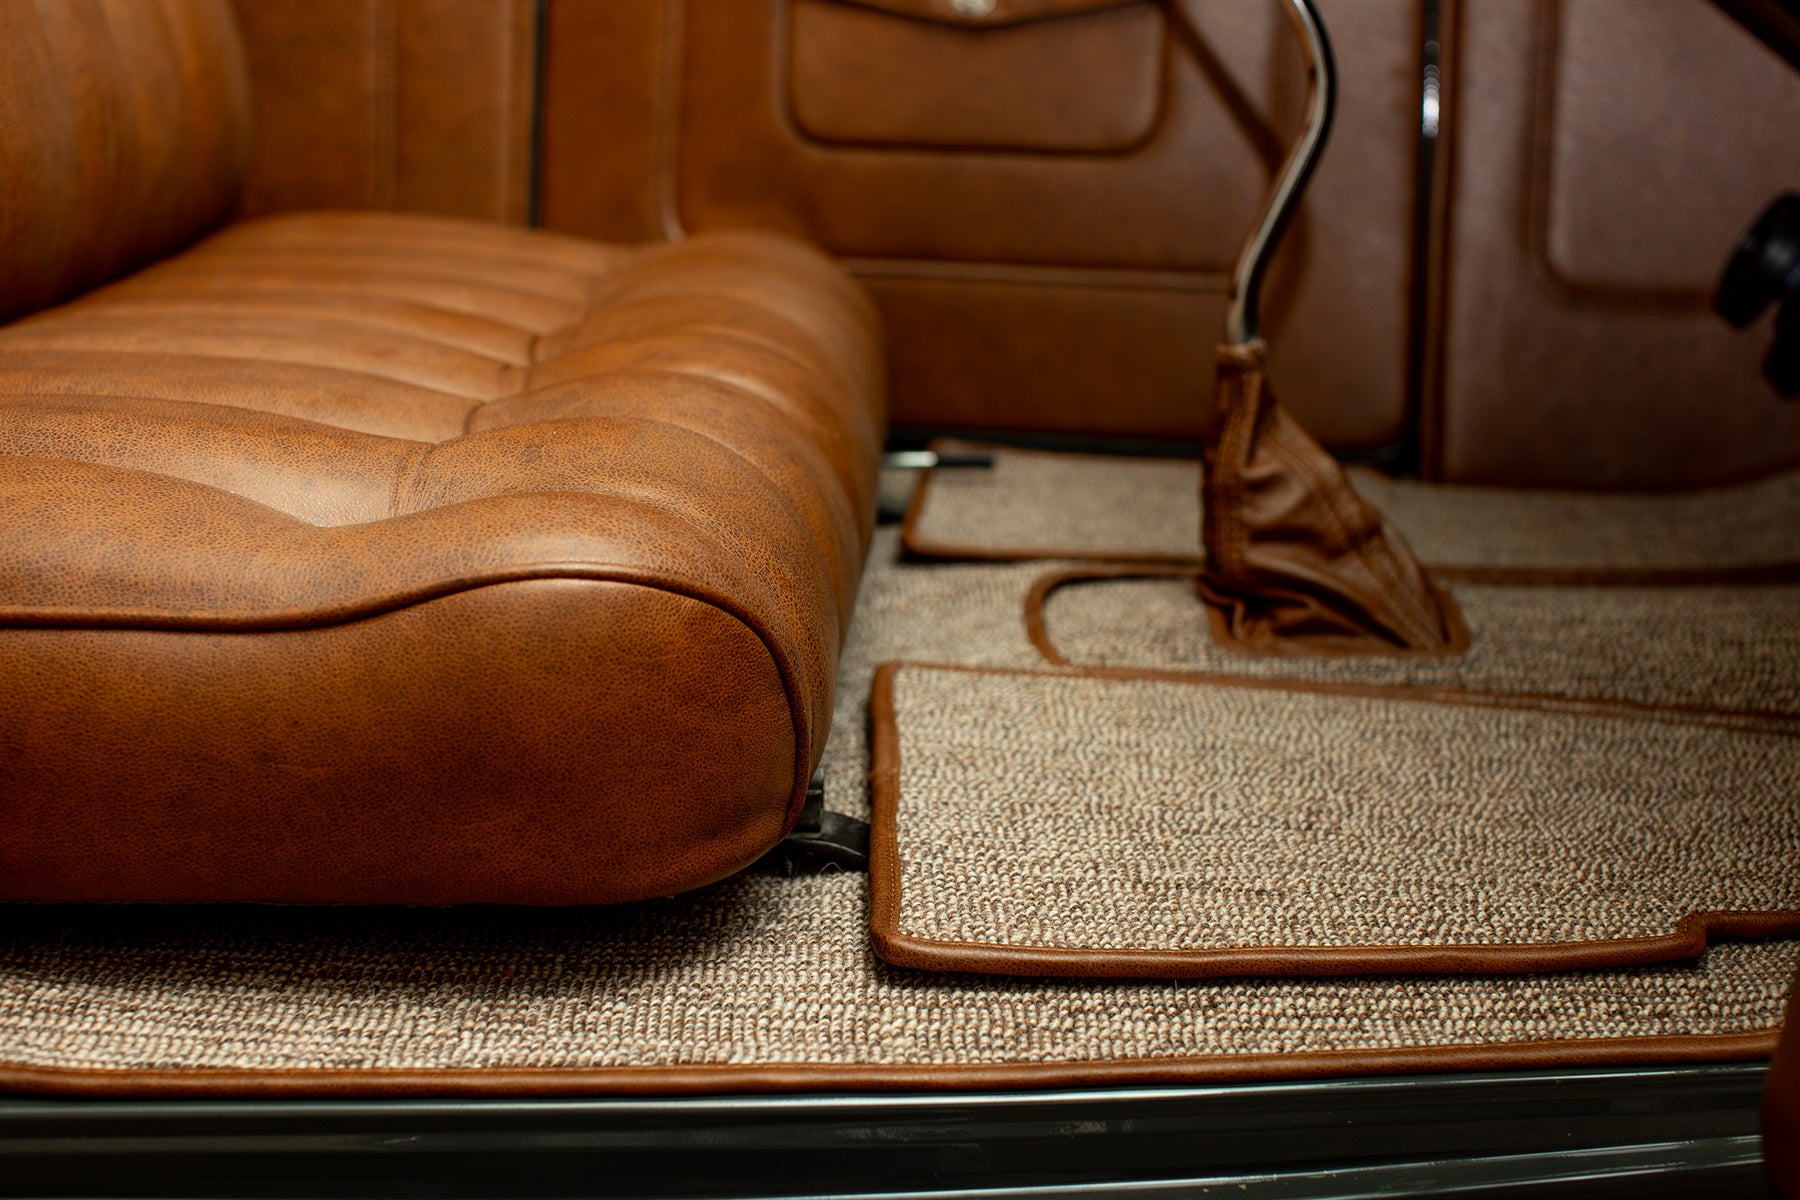 1932 Ford Roadster with Relicate Vintage Saddle Distressed Leather honey brown square weave carpet